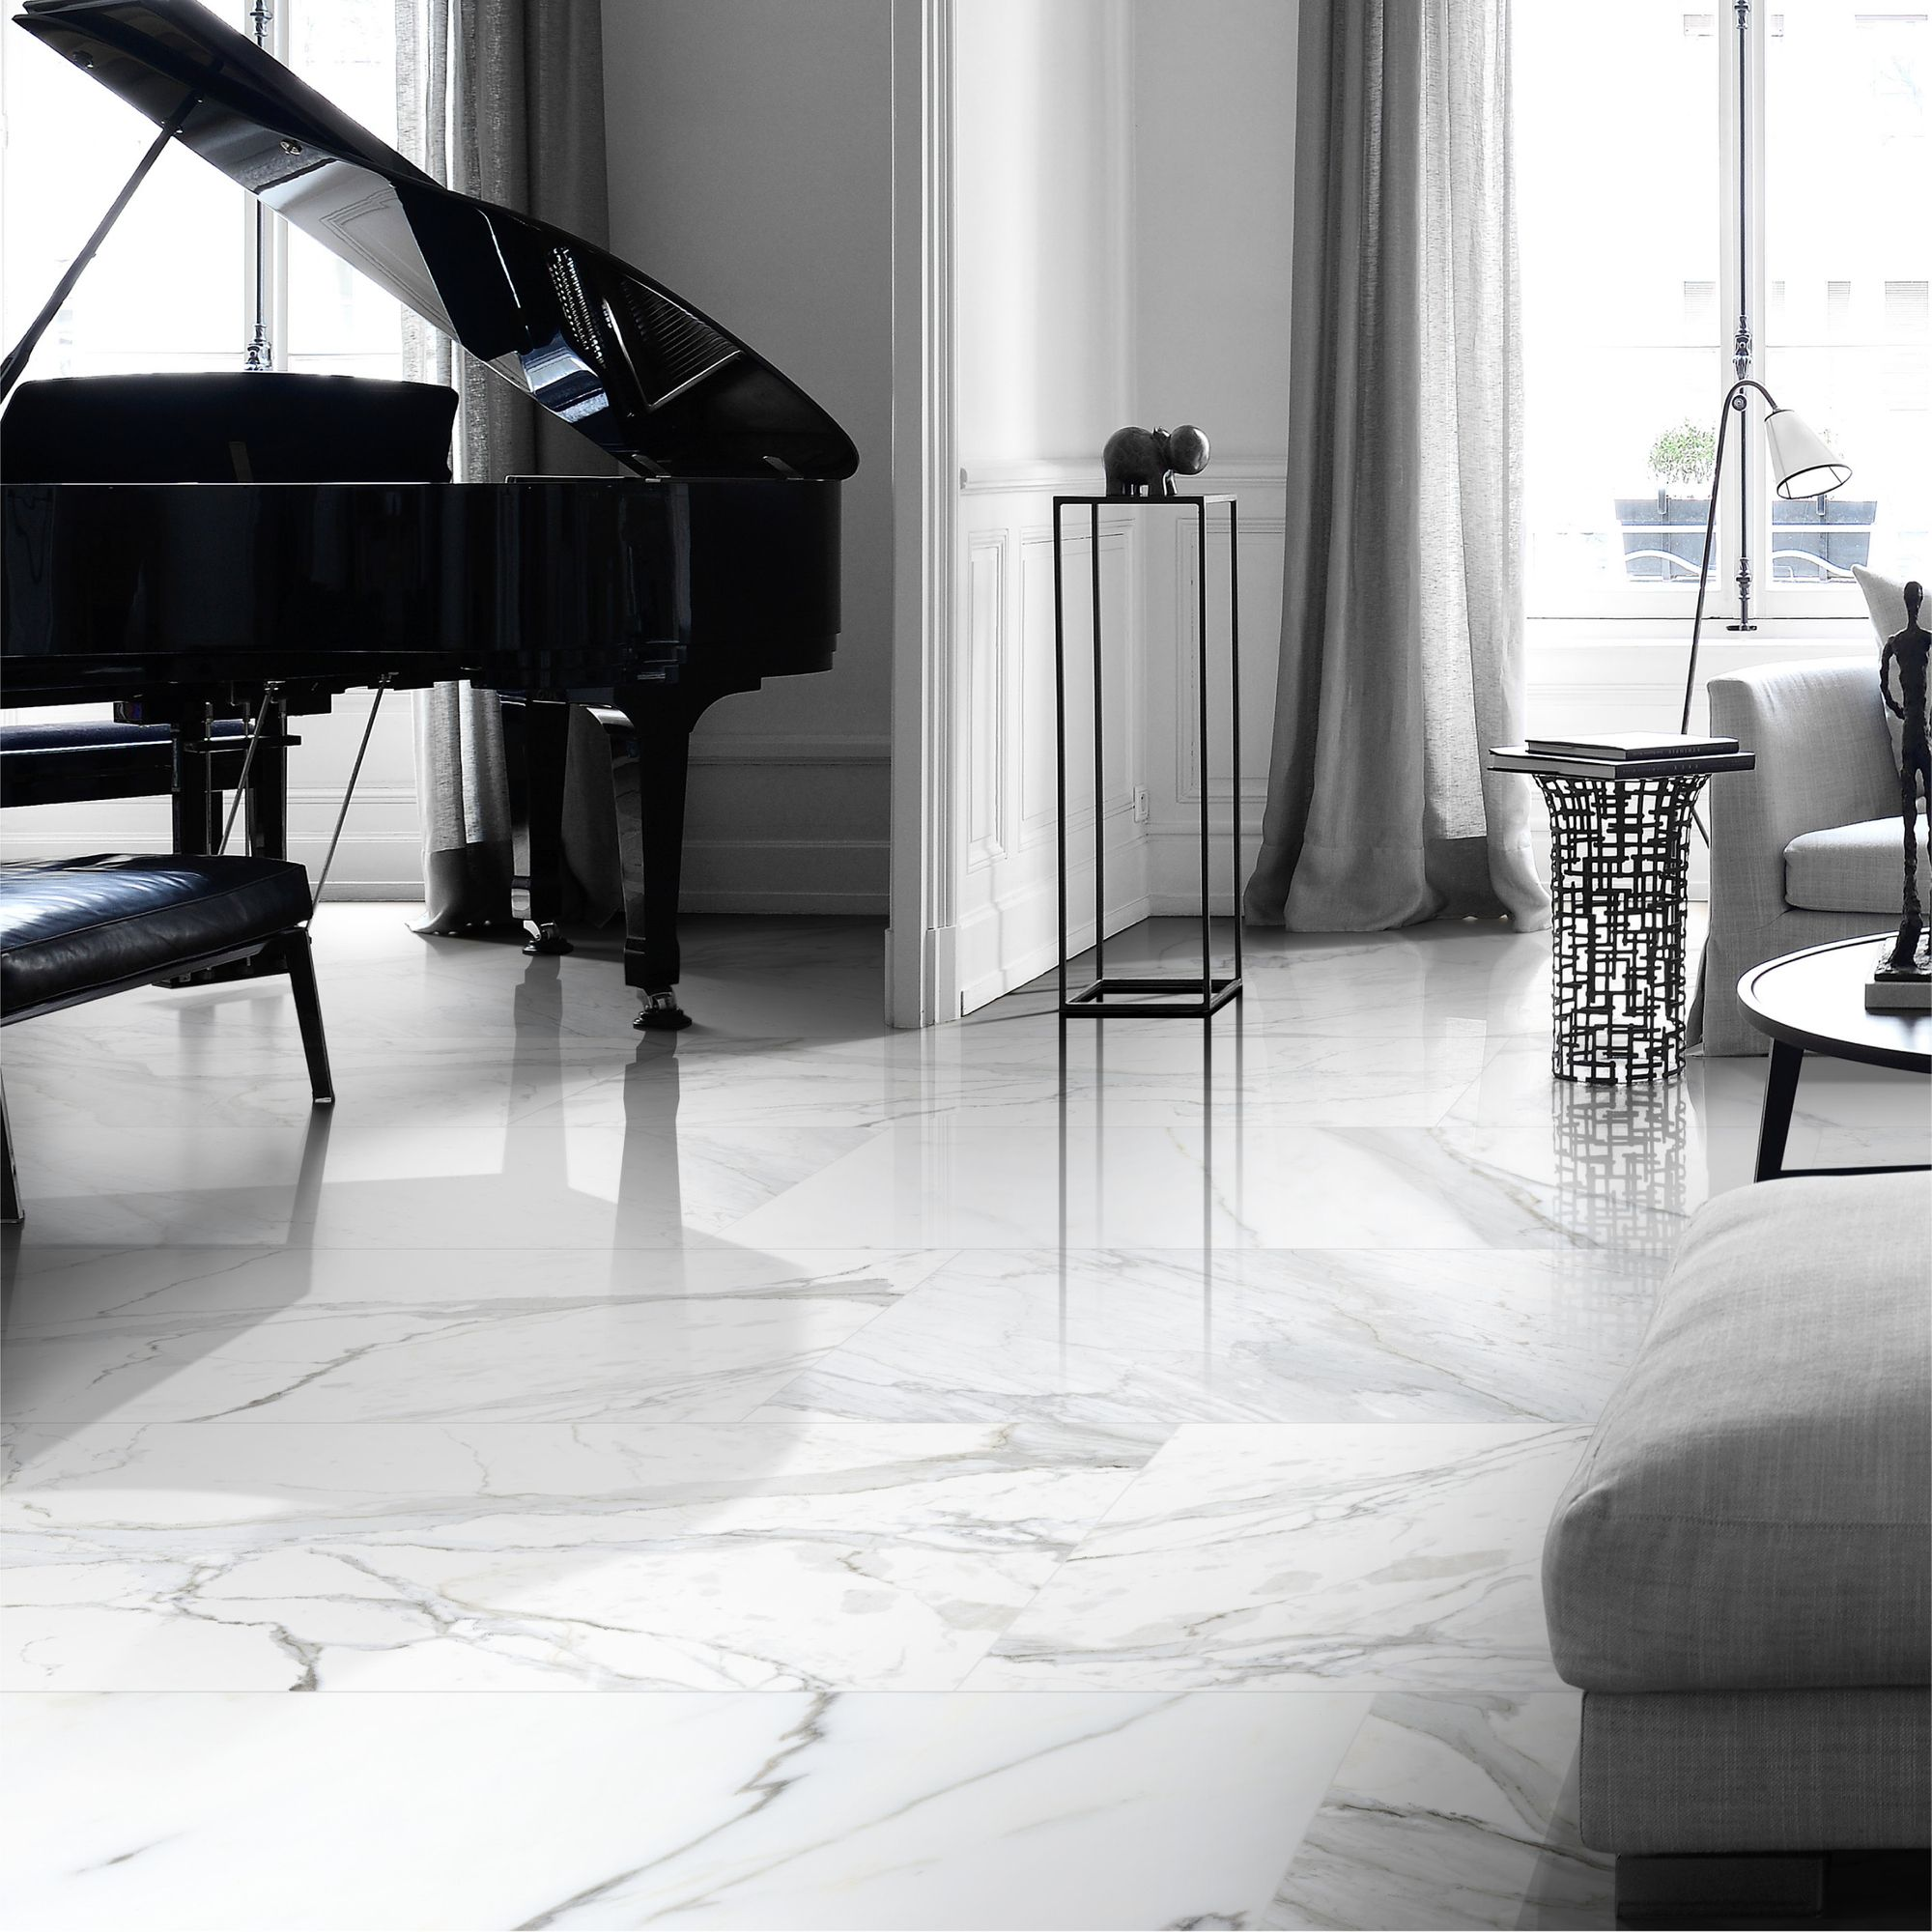 AVALON MUSE 3.0 CALACATTA THE NEW OLD CLASSIC – There's nothing like the iconic look of exquisite Calacatta marble. Unless, of course, you consider Avalon Muse Calacatta. Porcelain tiles with all the charm of marble, but with the outstanding durability of porcelain. Talk about the best of both worlds! . . #InteriorDesign #interiordesigns #modernhome #interior123 #interiordesire #interiordetails #interiorforinspo #topstylefiles#tile #tiles #porcelain #TileStyle #tiledesign #subwaytile